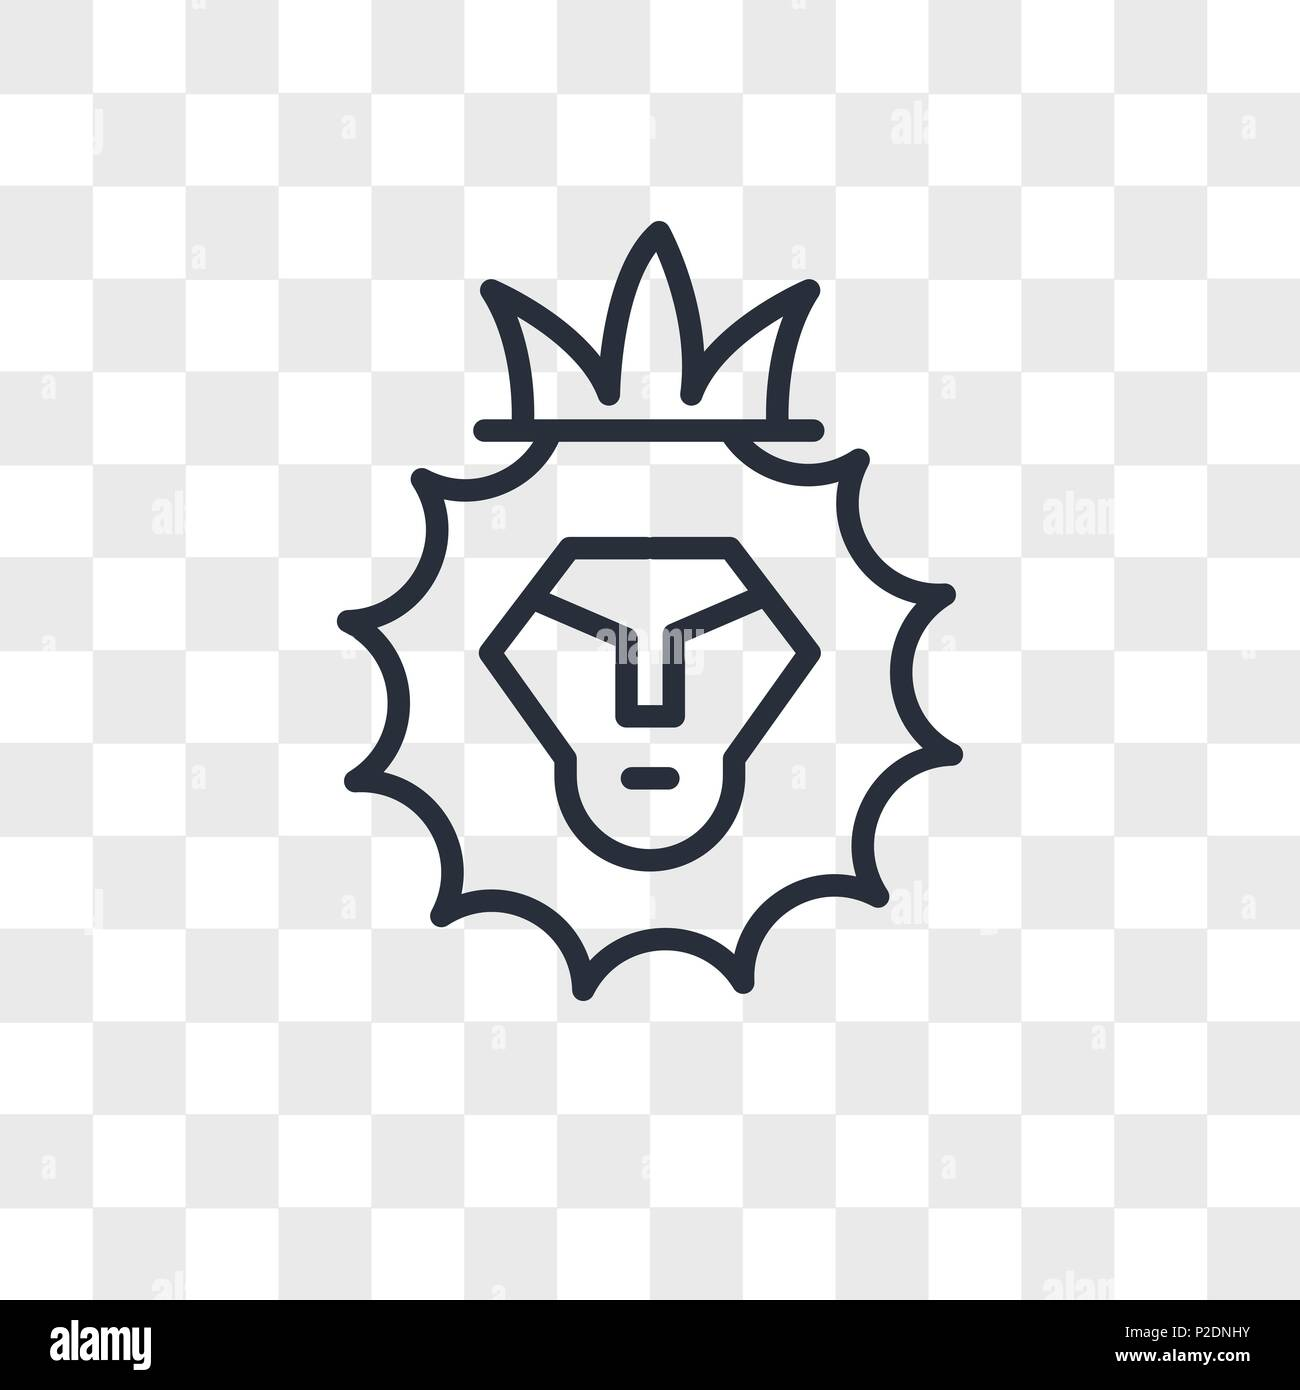 Lion of judah vector icon isolated on transparent background lion of judah logo concept